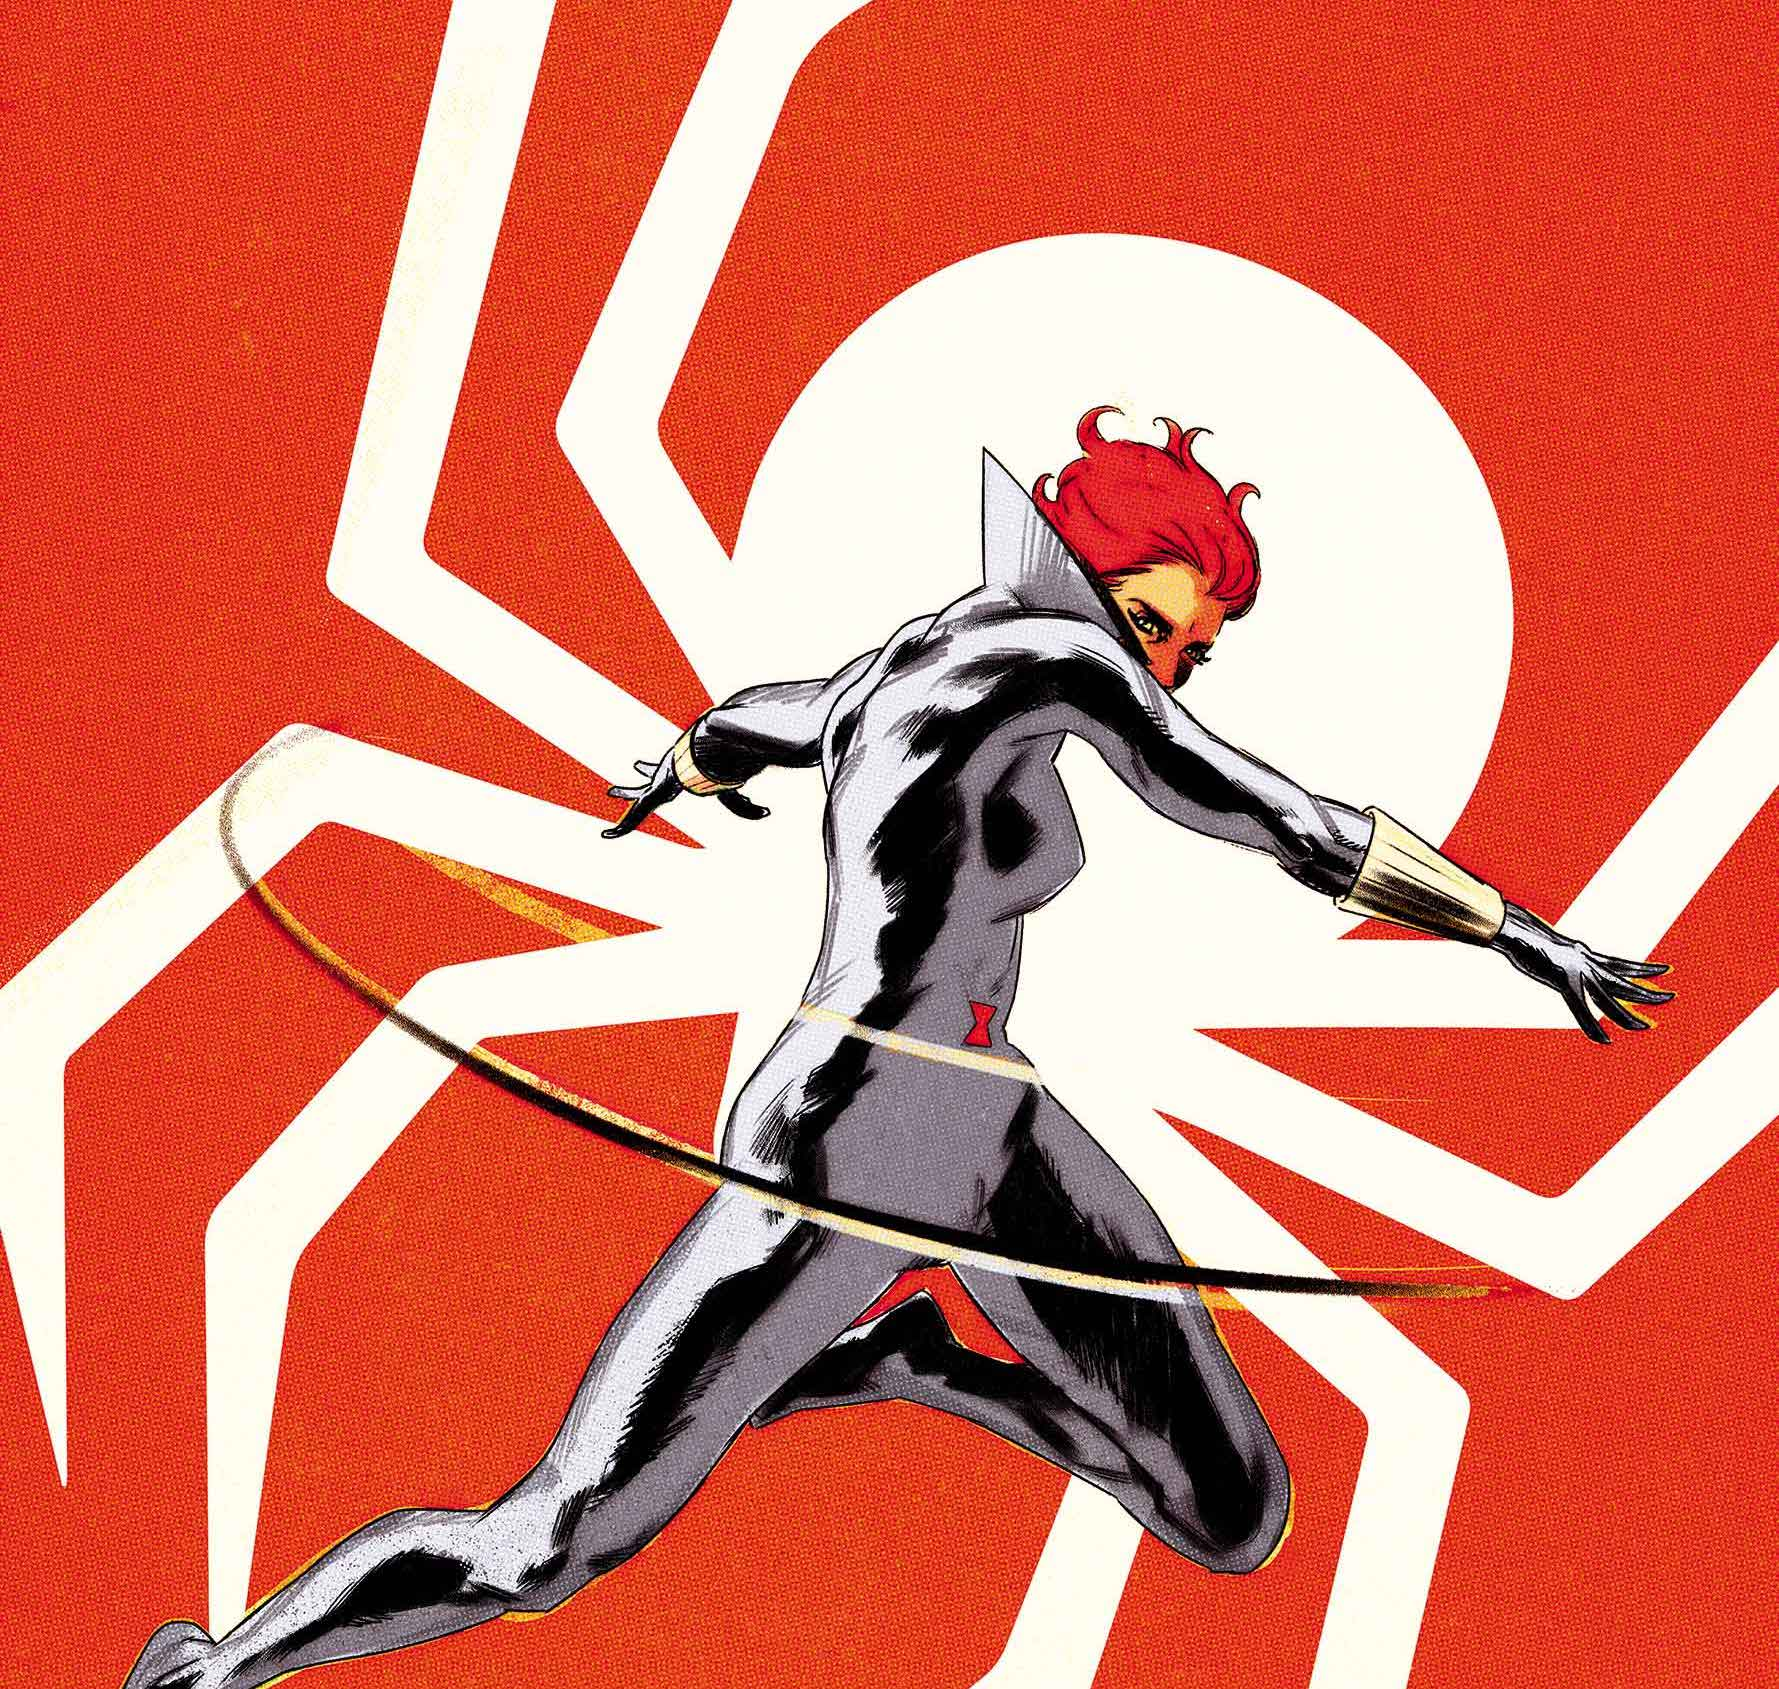 Marvel teases story details for next 'Black Widow' story arc